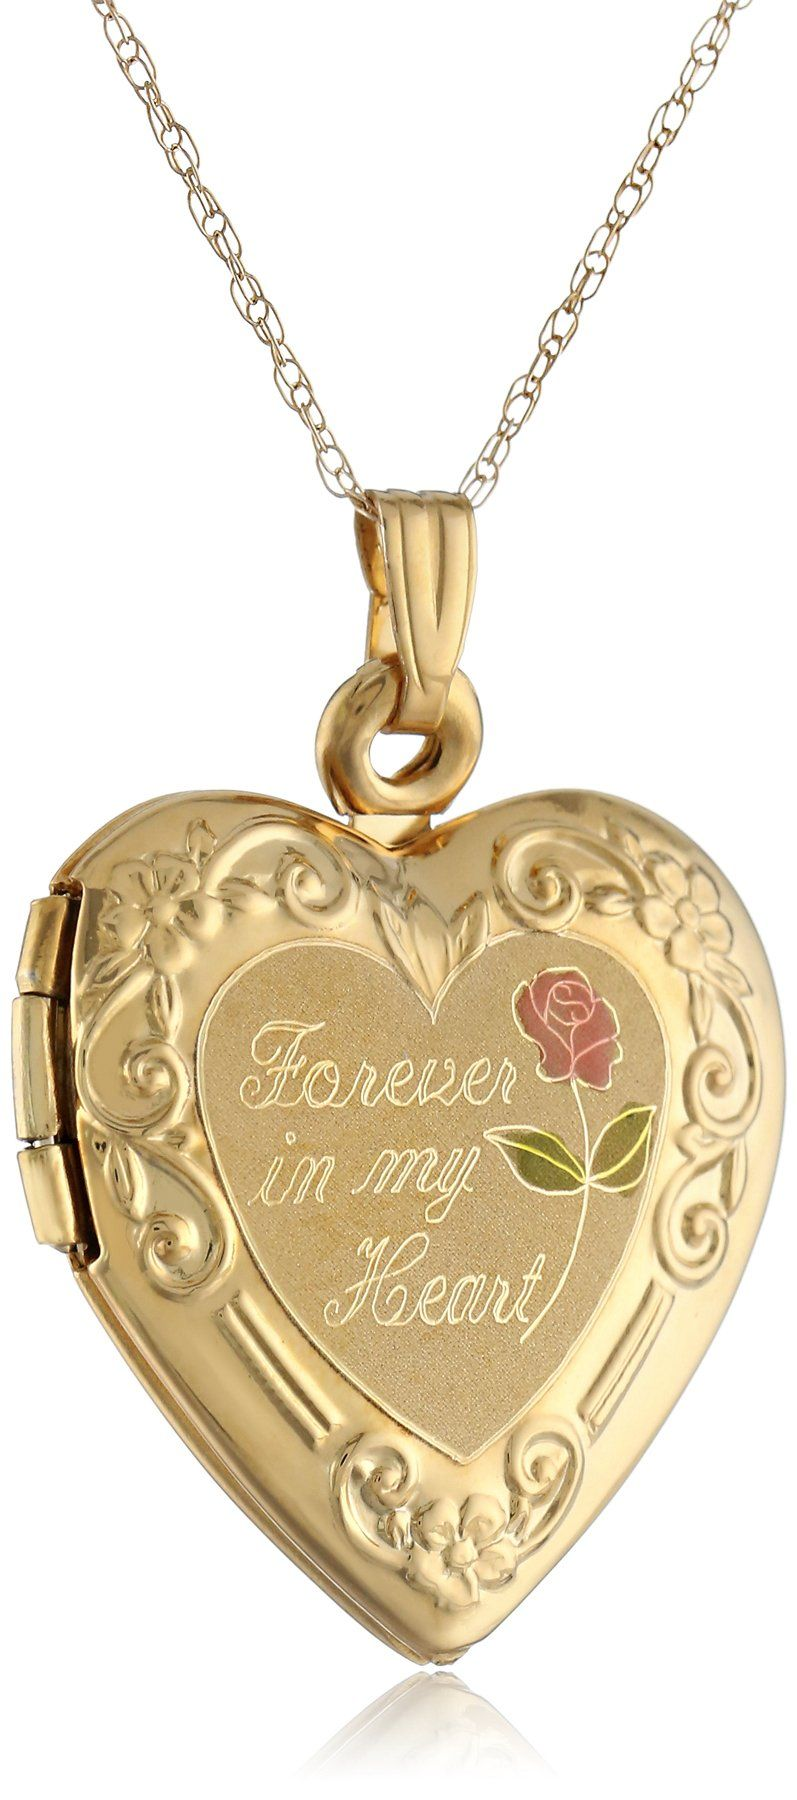 14k yellow gold forever in my heart locket necklace 18 14k yellow gold forever in my heart locket necklace aloadofball Choice Image